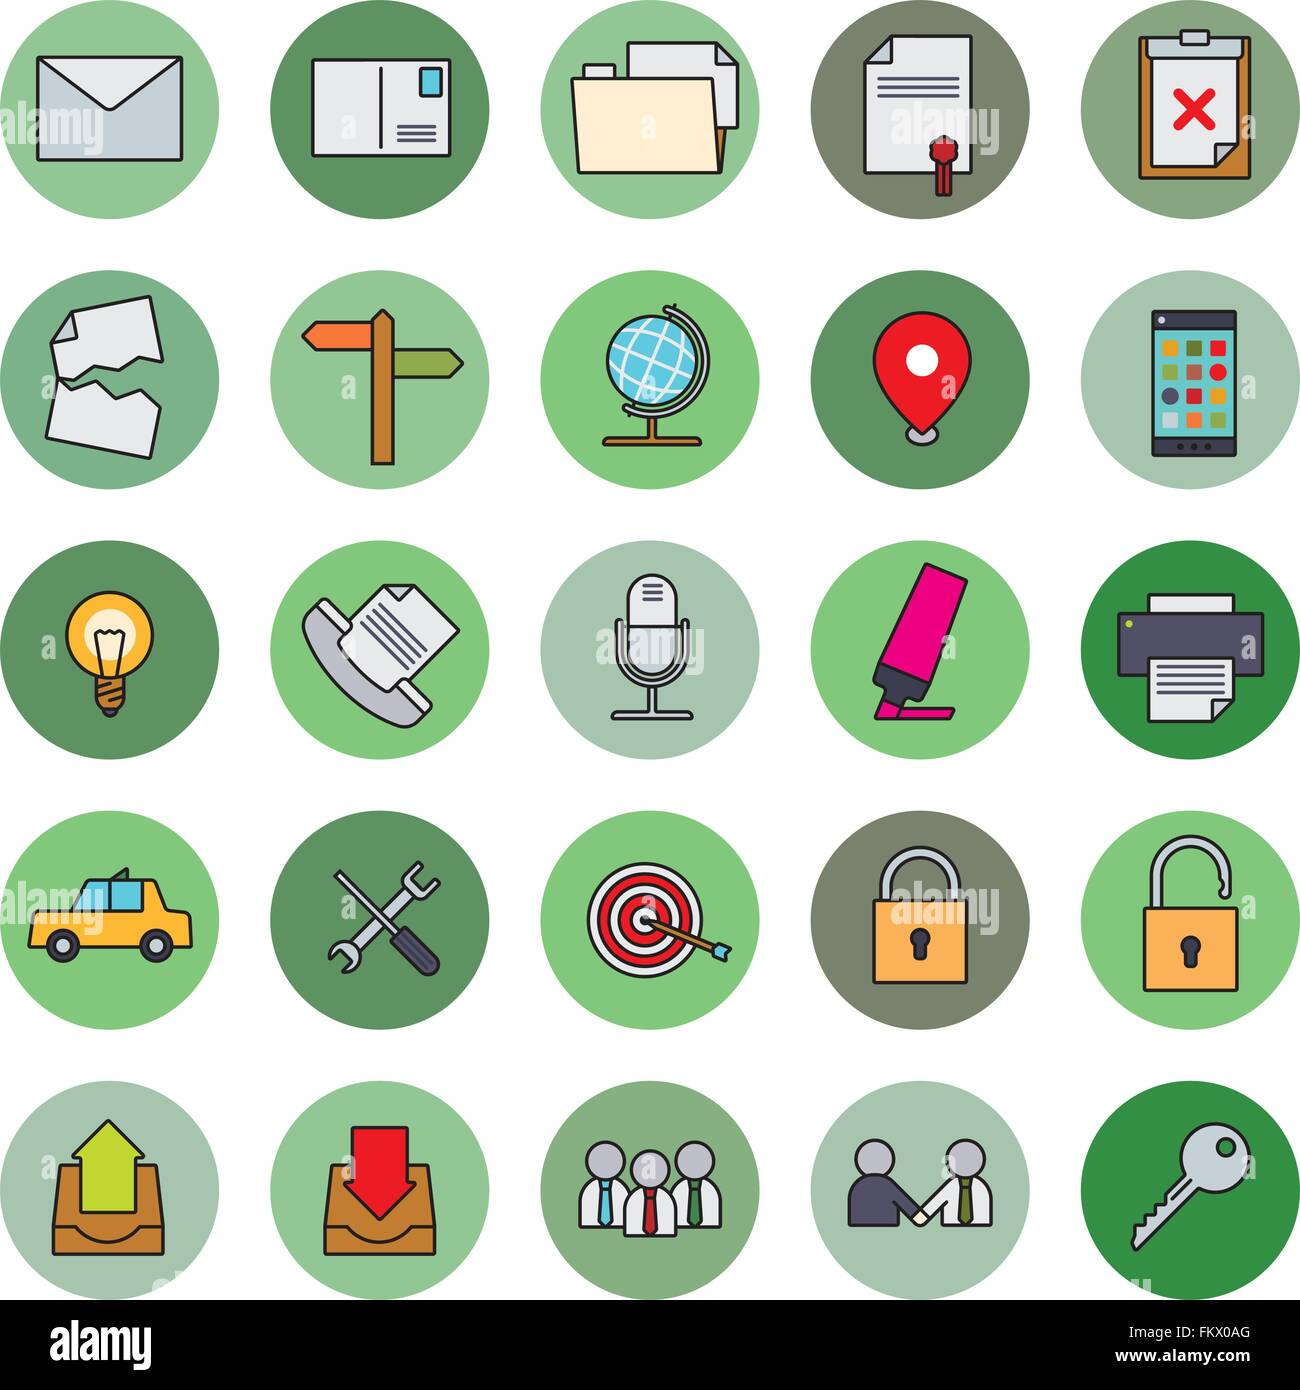 Collection of 25 business and office related filled line icons in circles, part 2 - Stock Image